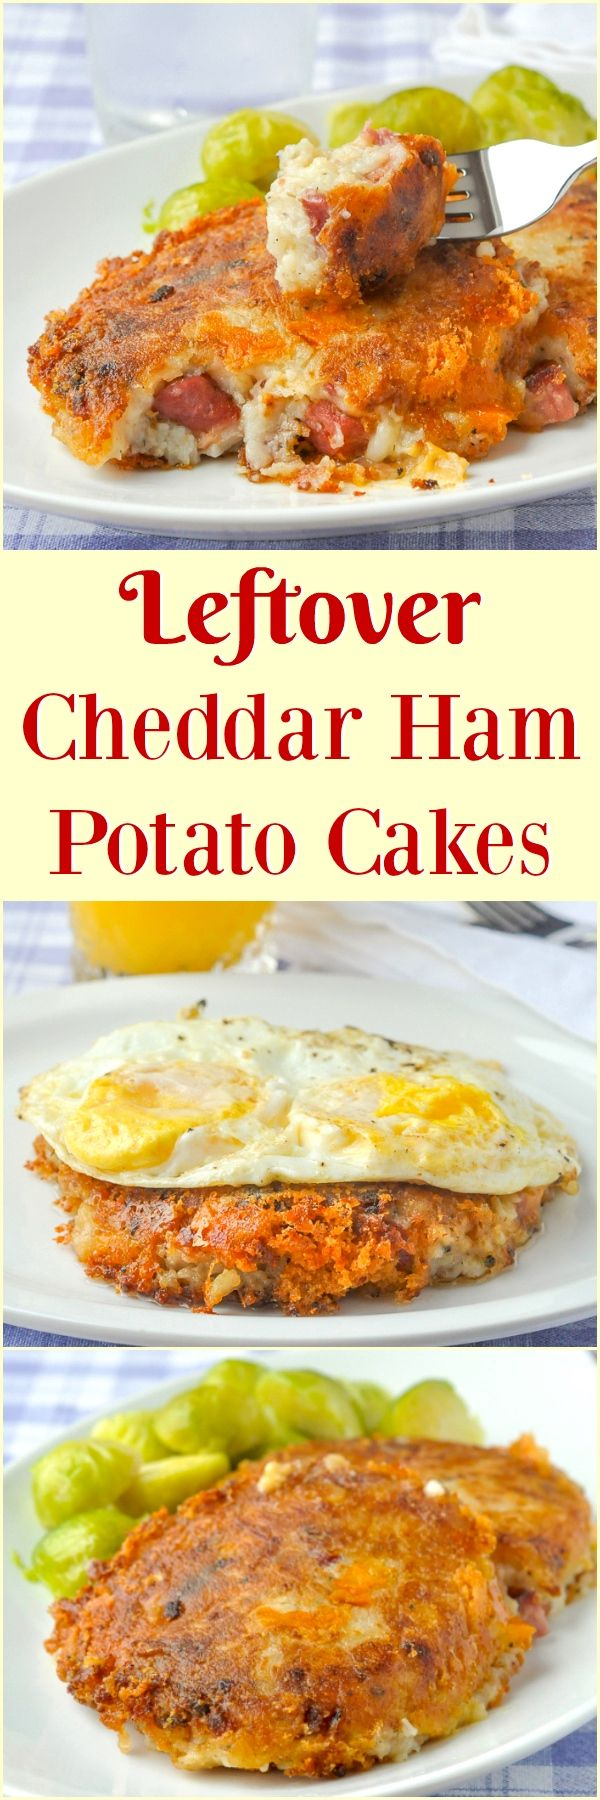 Cheddar Ham Potato Cakes – a leftover recipe winner! Leftover baked ham and mashed potatoes with cheddar cheese that's great for dinner or for brunch with poached or fried eggs.